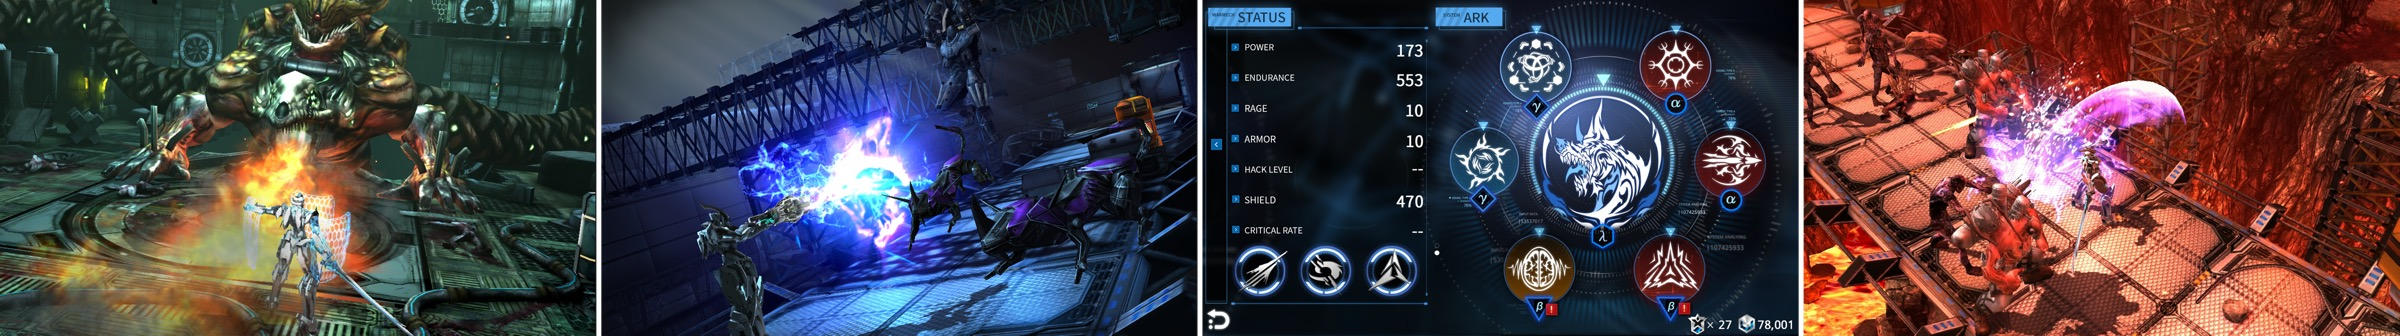 APP SALE: Sci-Fi Game 'Implosion' is Free, Down From $10